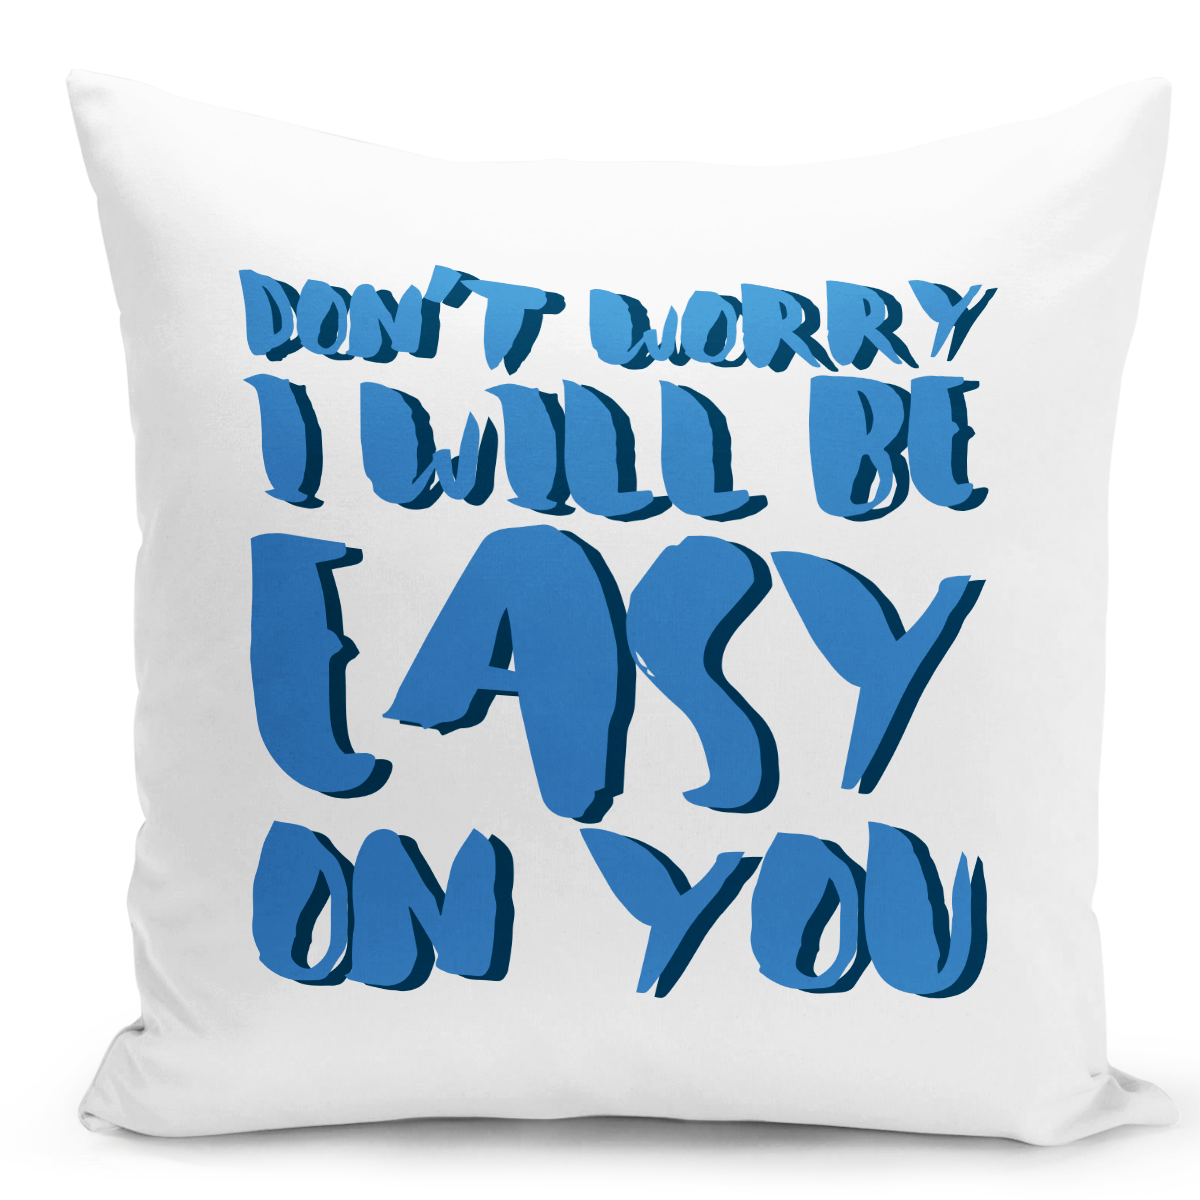 White-Throw-Pillow-Dont-Worry-i-Will-Be-Easy-On-You---Pure-White-Printed-16-x-16-inch-Square-Home-Decor-Couch-Pillow-